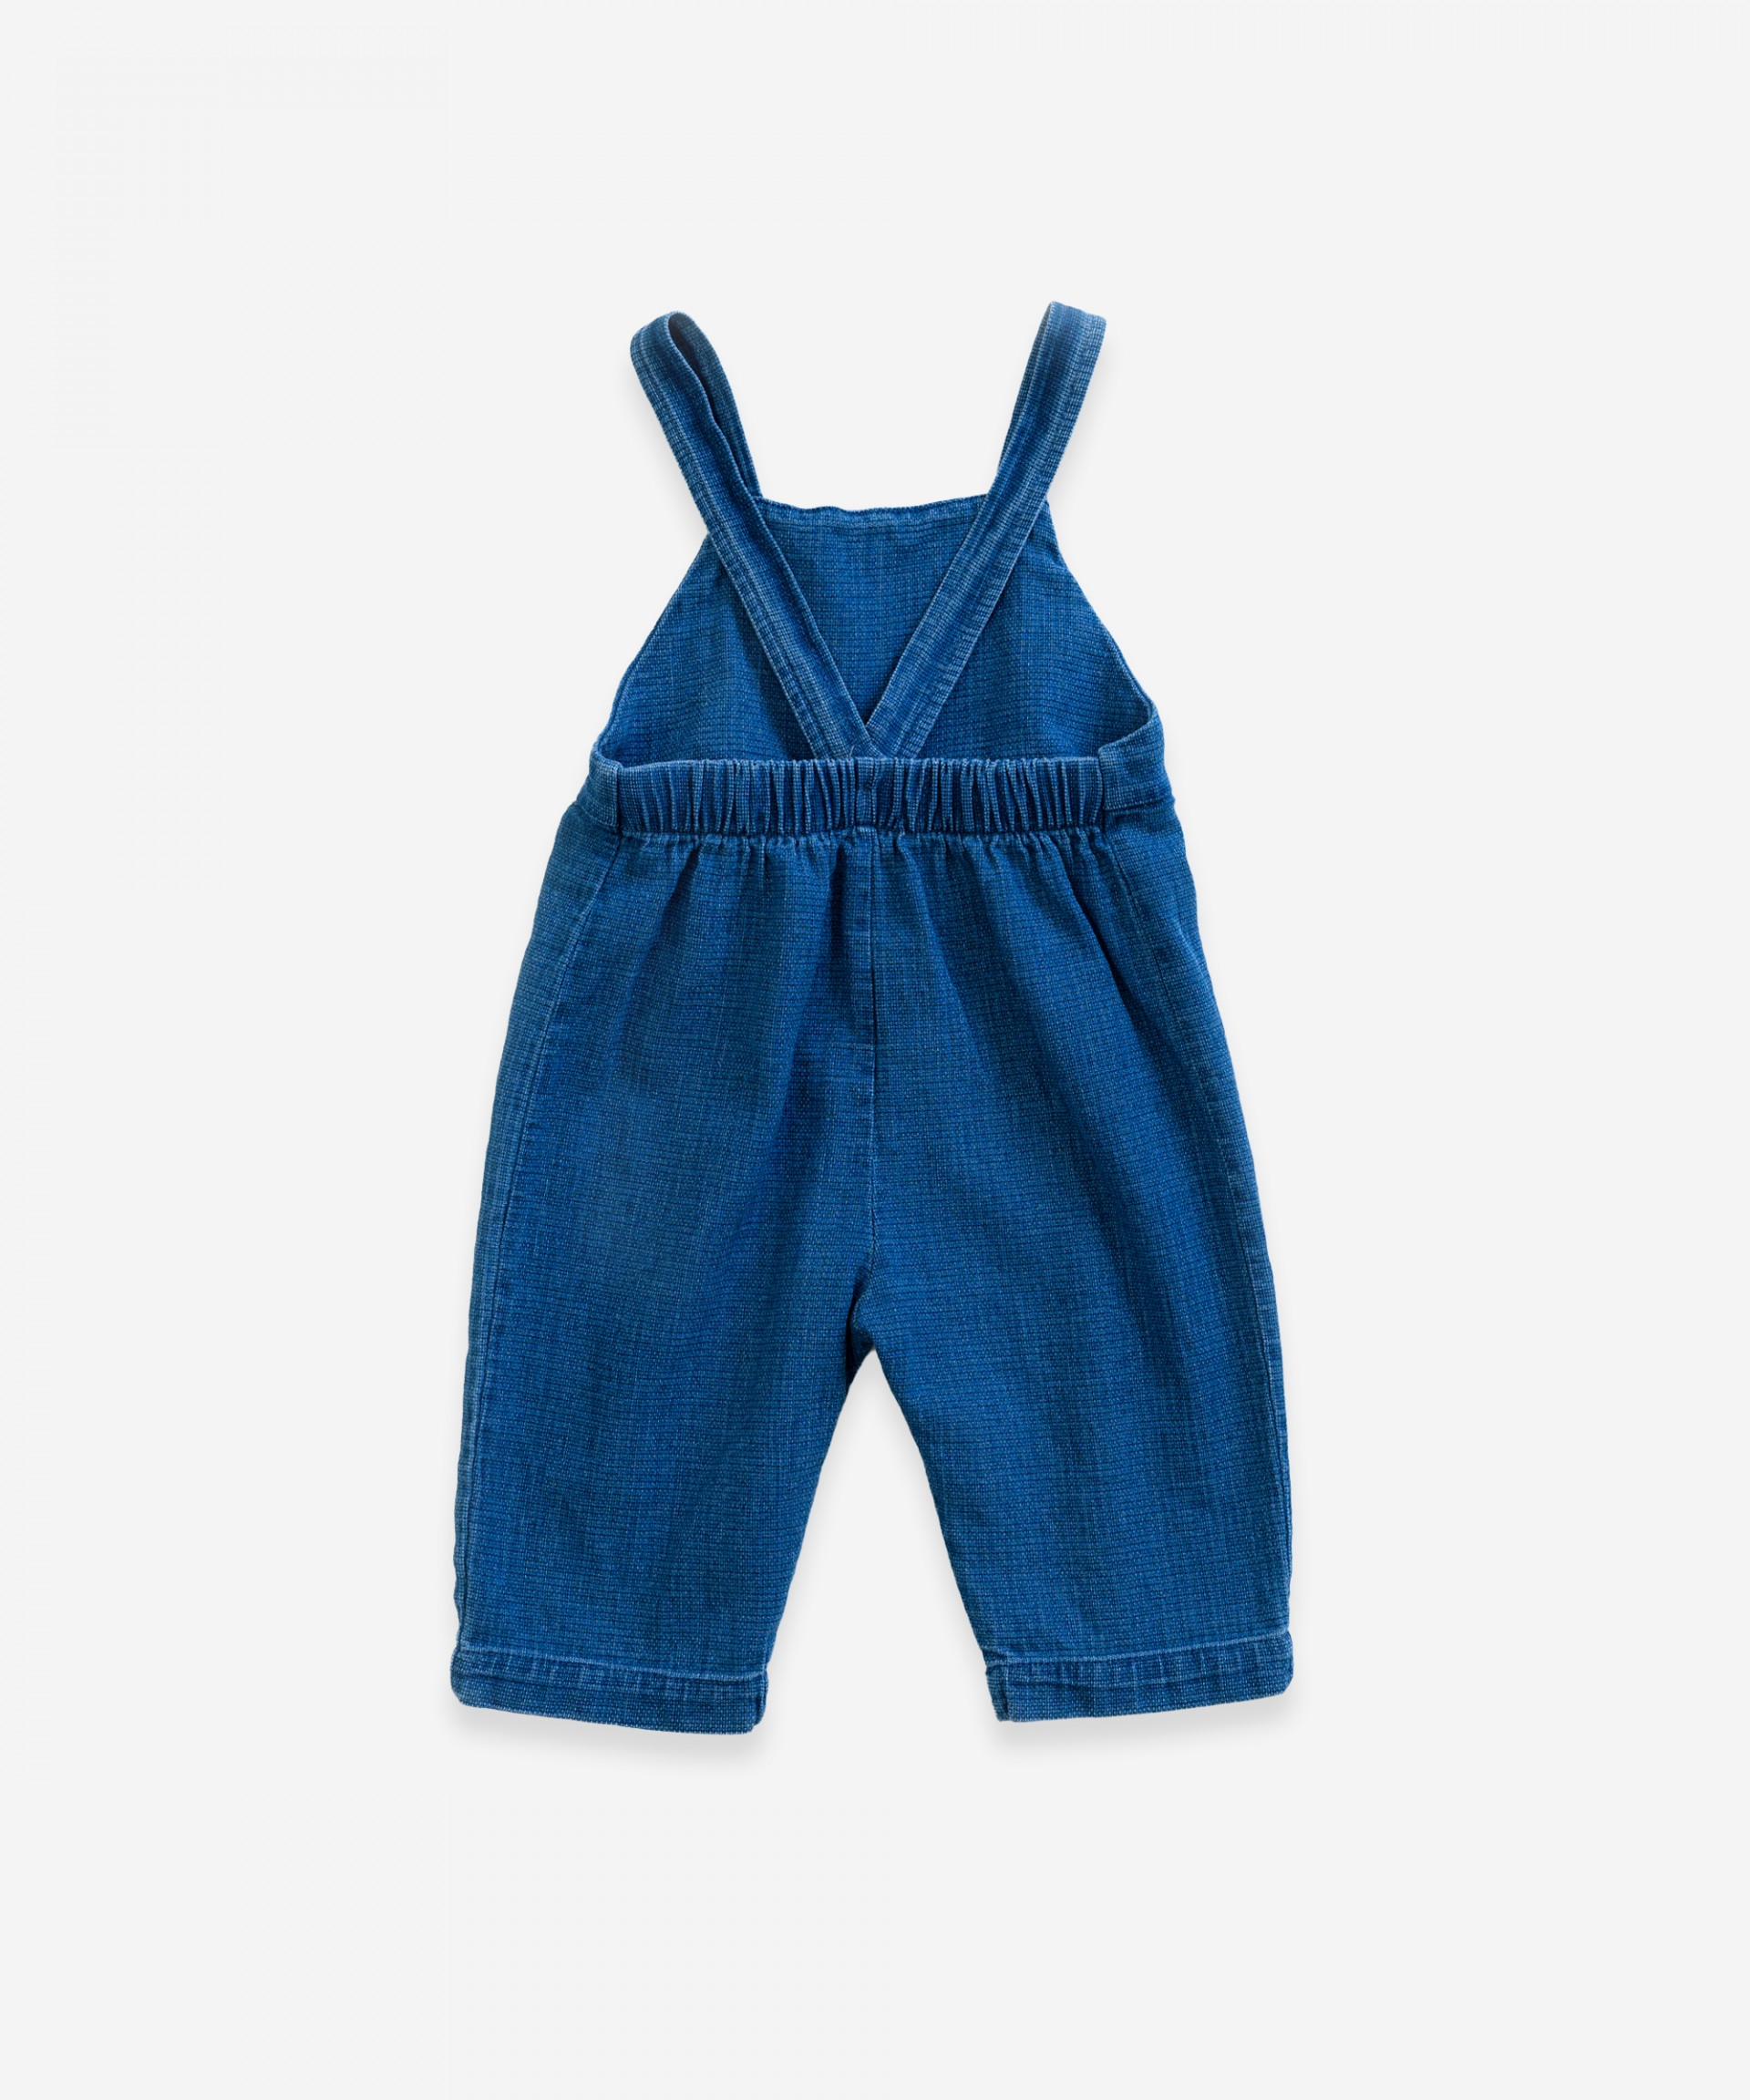 Jumpsuit with pockets | Weaving